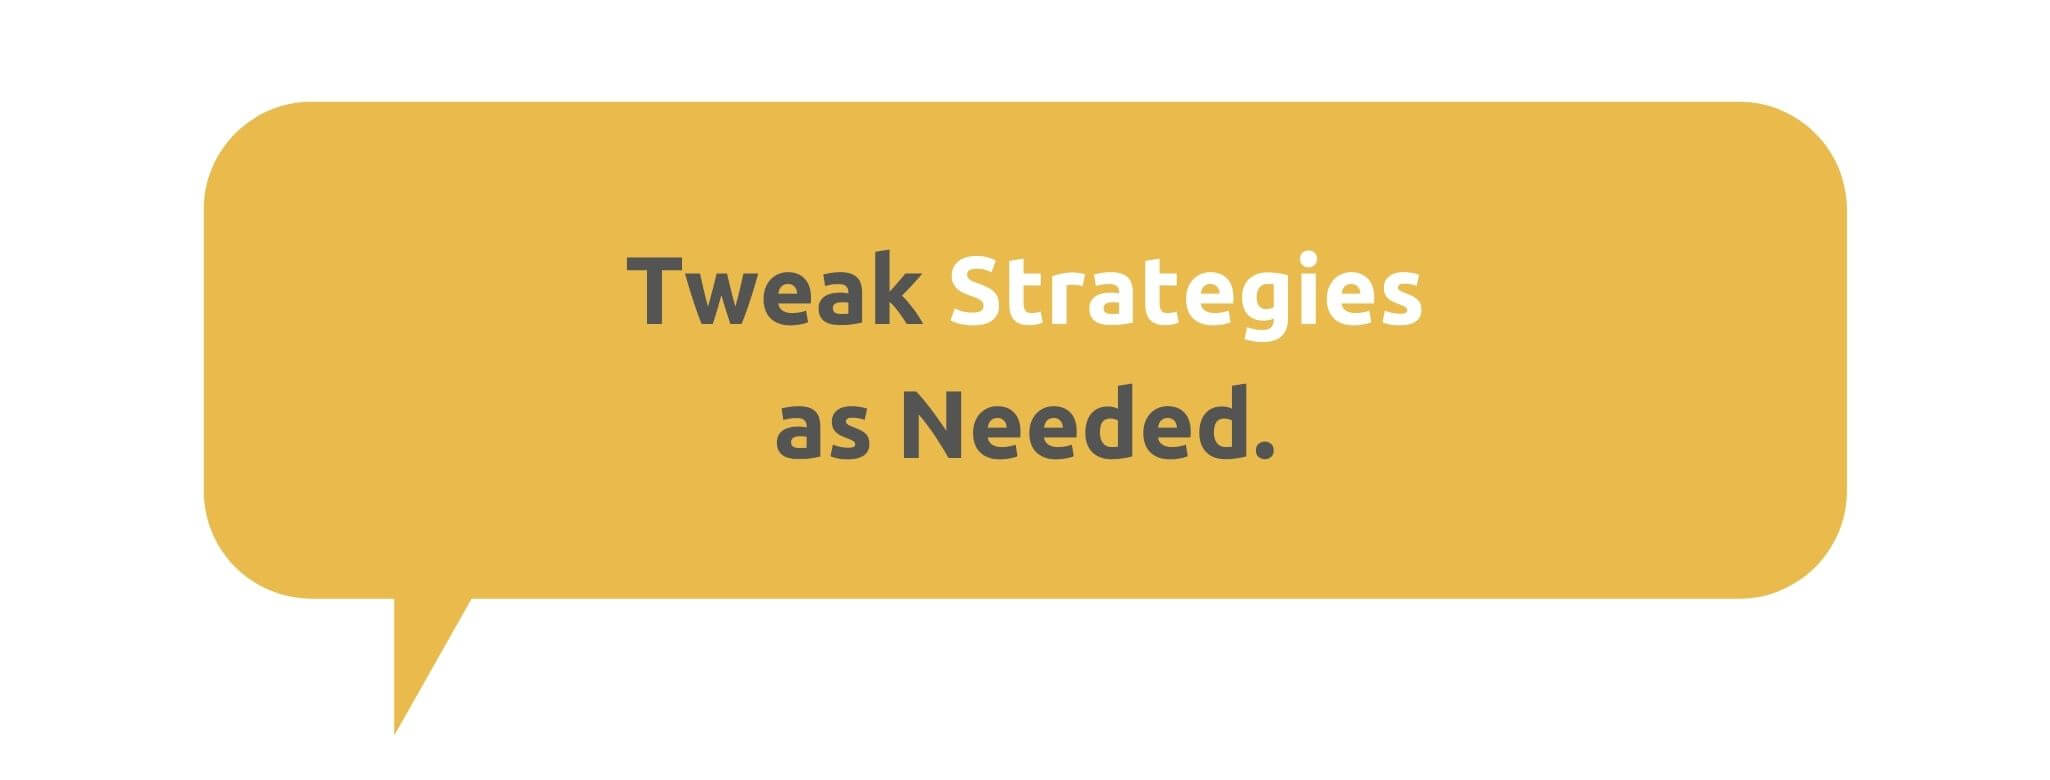 Tweak Strategies as Needed - How to Run a Customer-Centric Business - Replyco Helpdesk Software for eCommerce